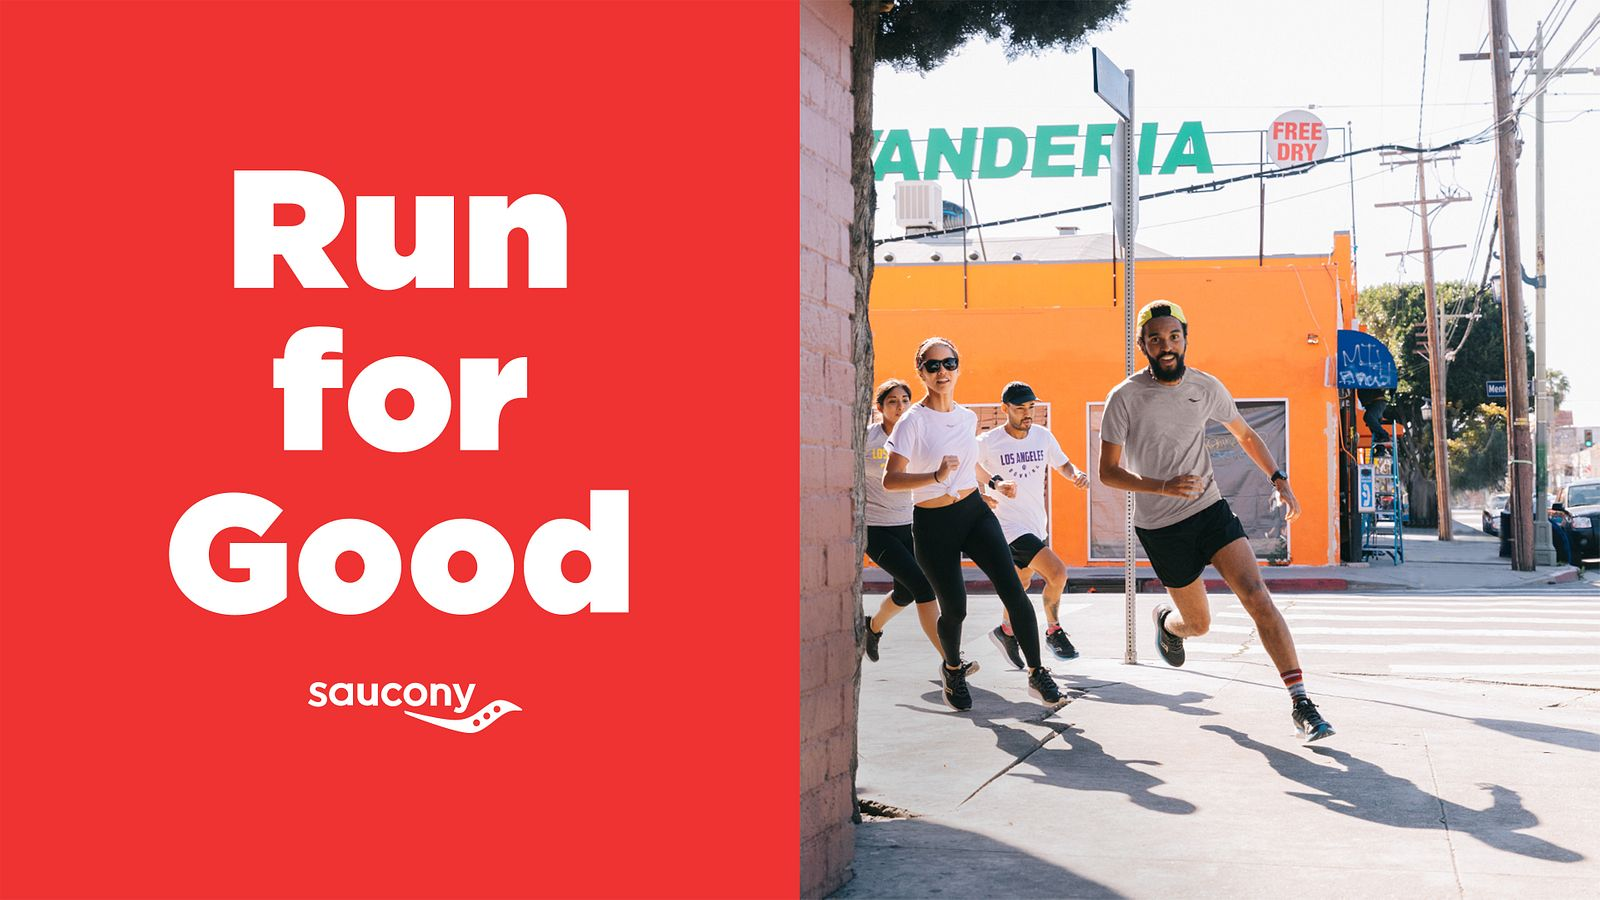 Right half: Run for Good & Saucony logo lock up. Left half: A running group rounds the corner of a building against an city background.